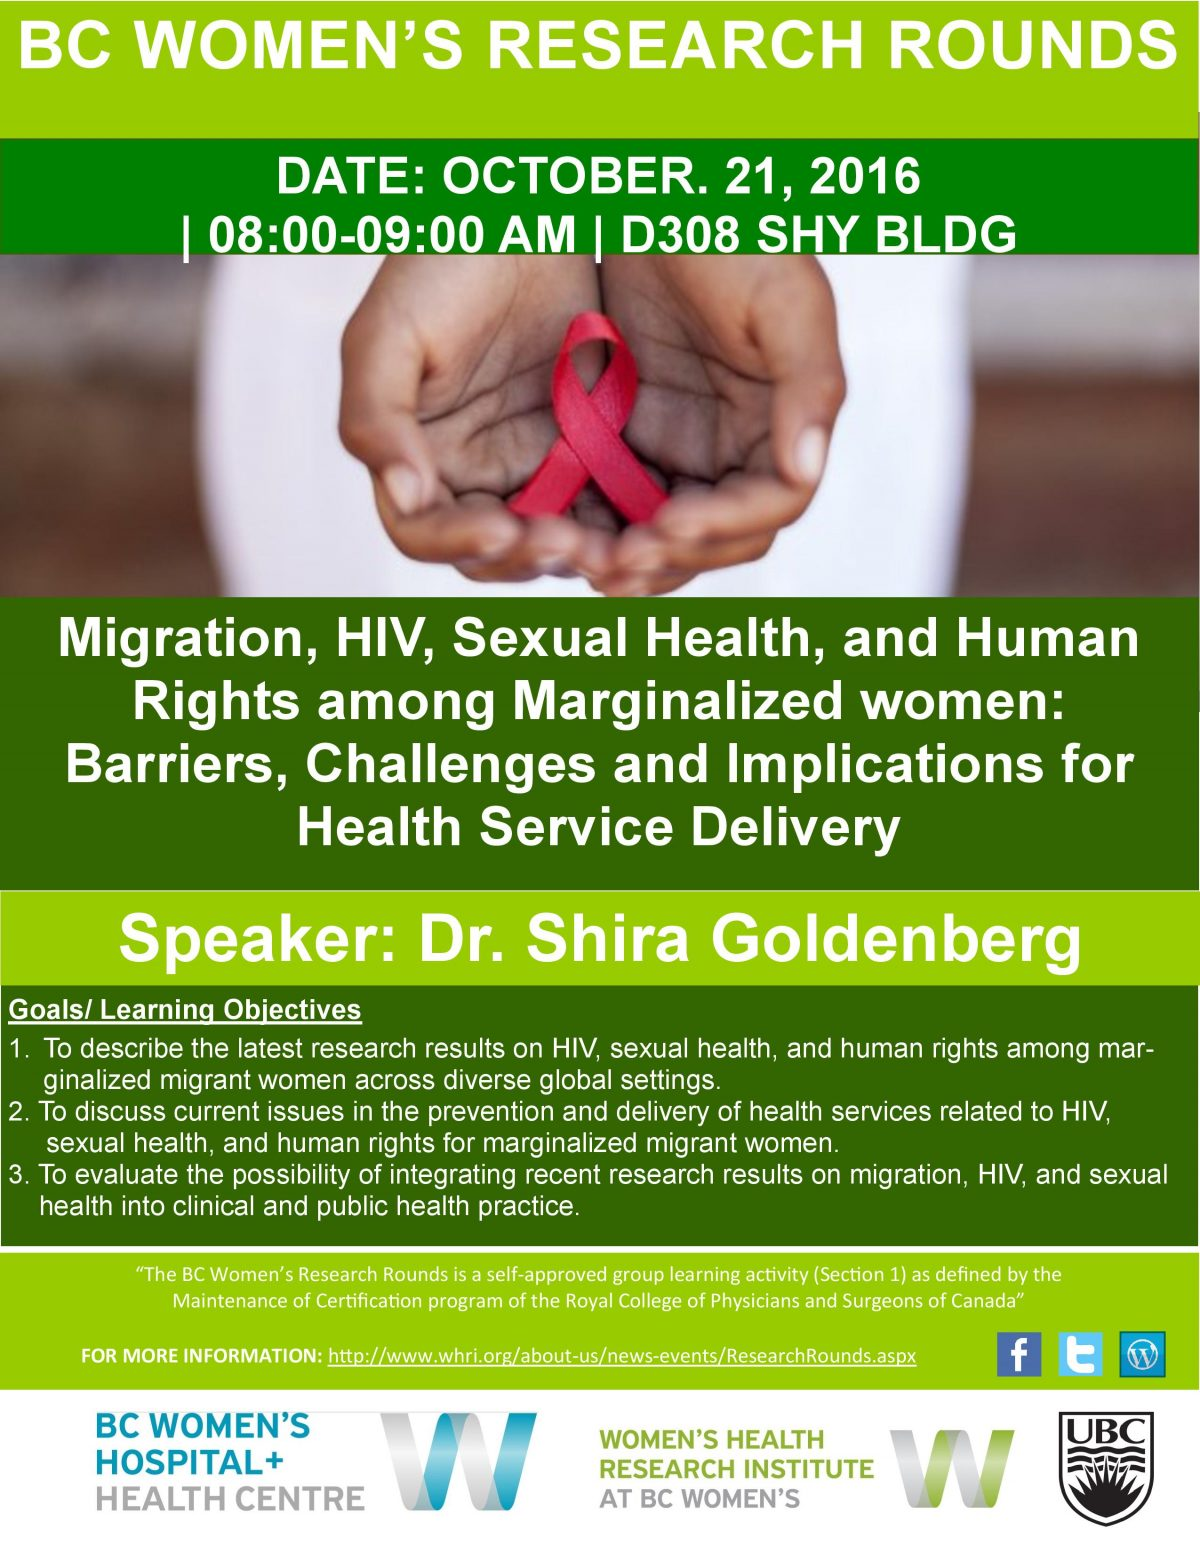 bc-womens-research-rounds-october-21-201-dr-shira-goldenberg-page-001-1